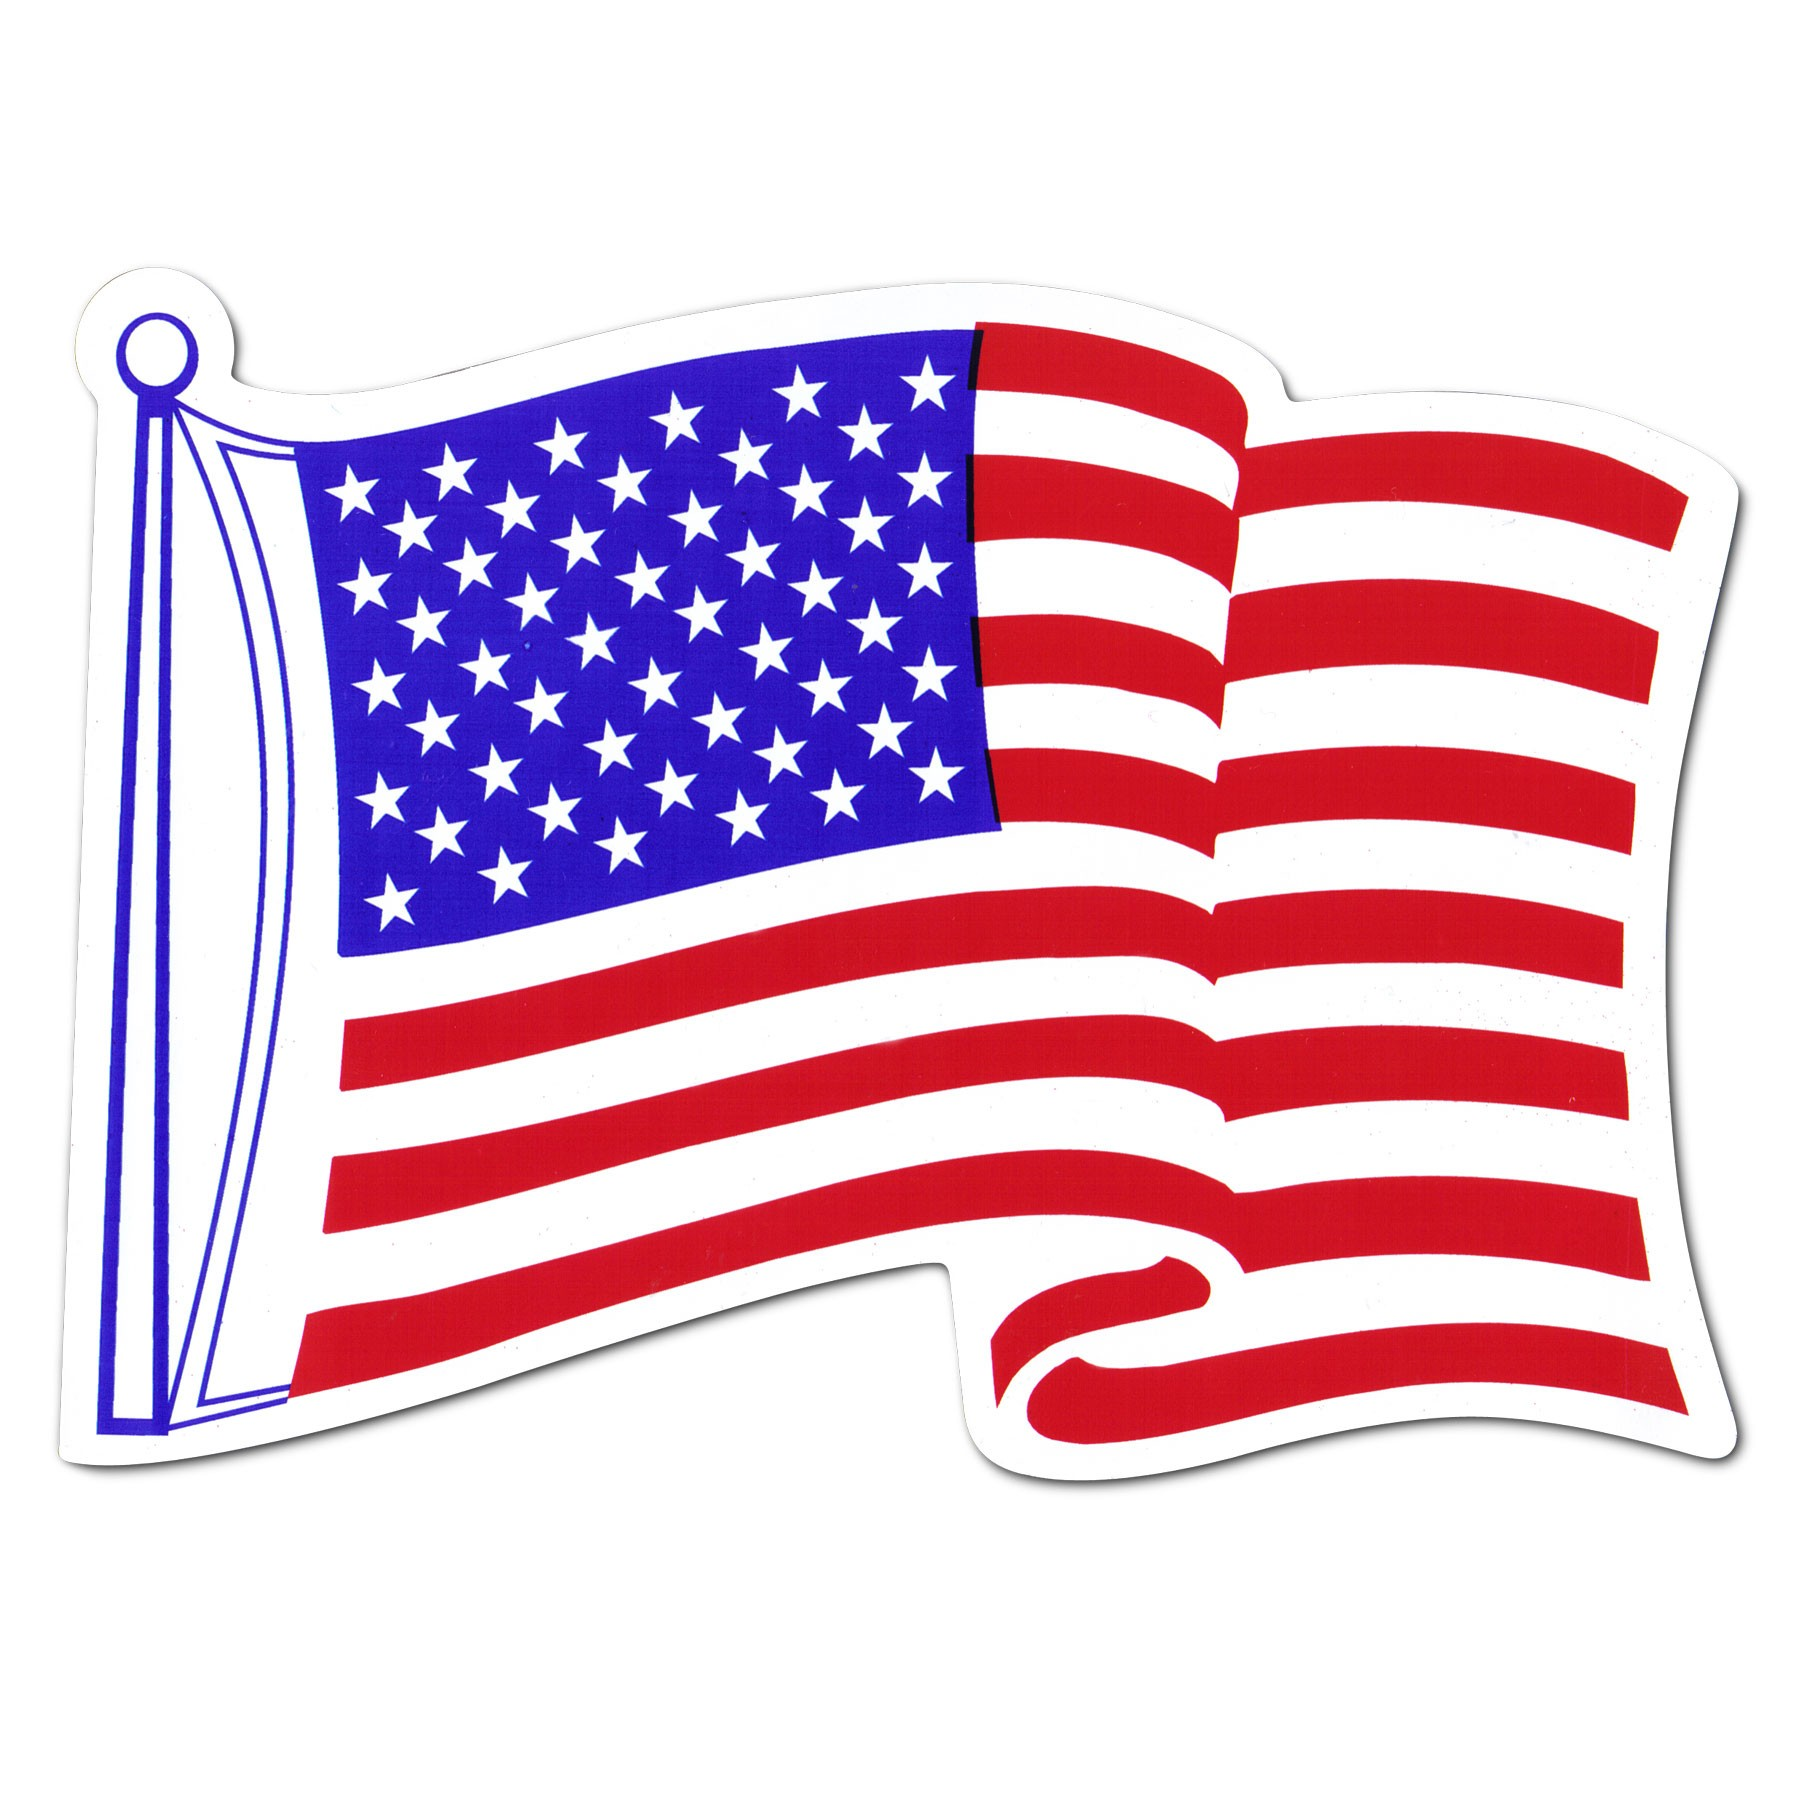 state flag clipart at getdrawings com free for personal use state rh getdrawings com american flag clipart free racing flag clipart free